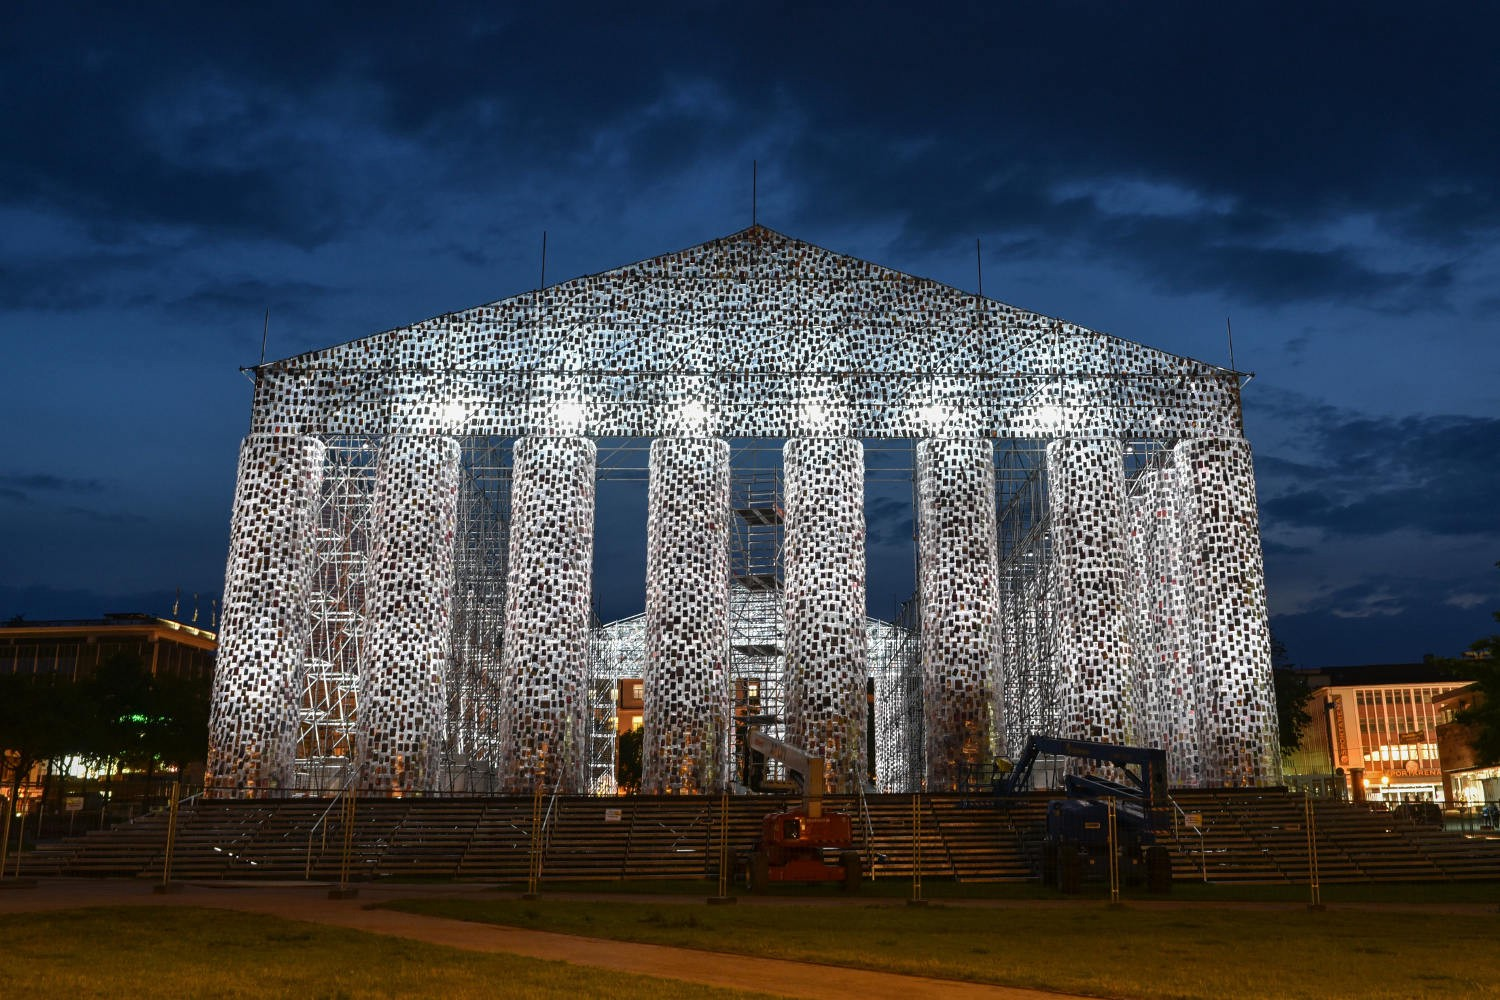 A parthenon made of banned books now stands where nazis once burned even on a slow news day in the book world there are intriguing projects coming to fruition and theres excitement over future projects now brewing today fandeluxe Choice Image